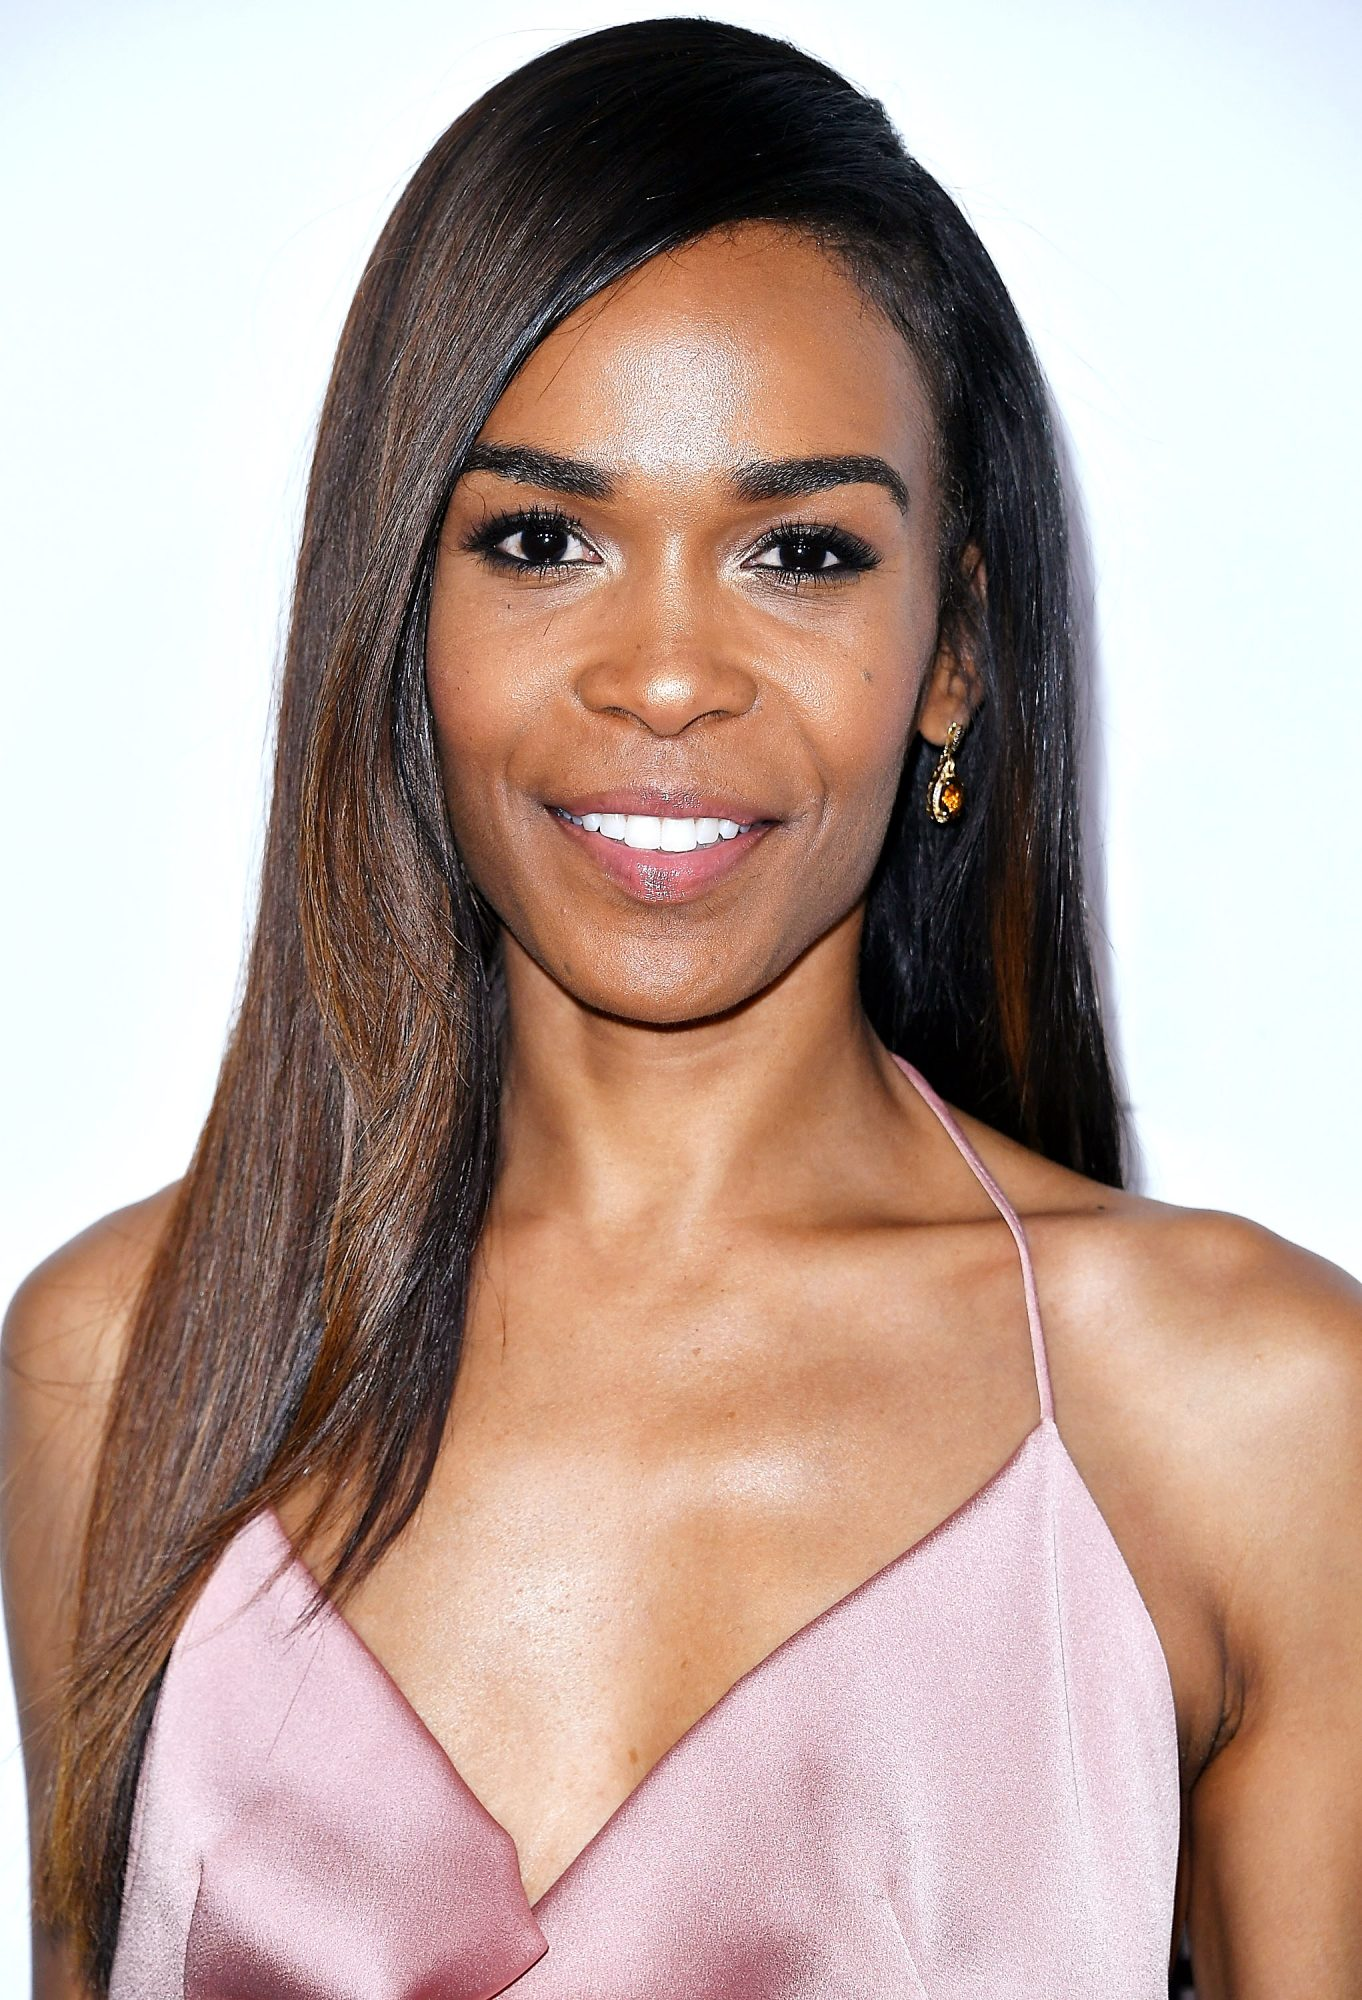 Michelle Williams Reveals She Was Suicidal at the Height of Destiny's Child Fame